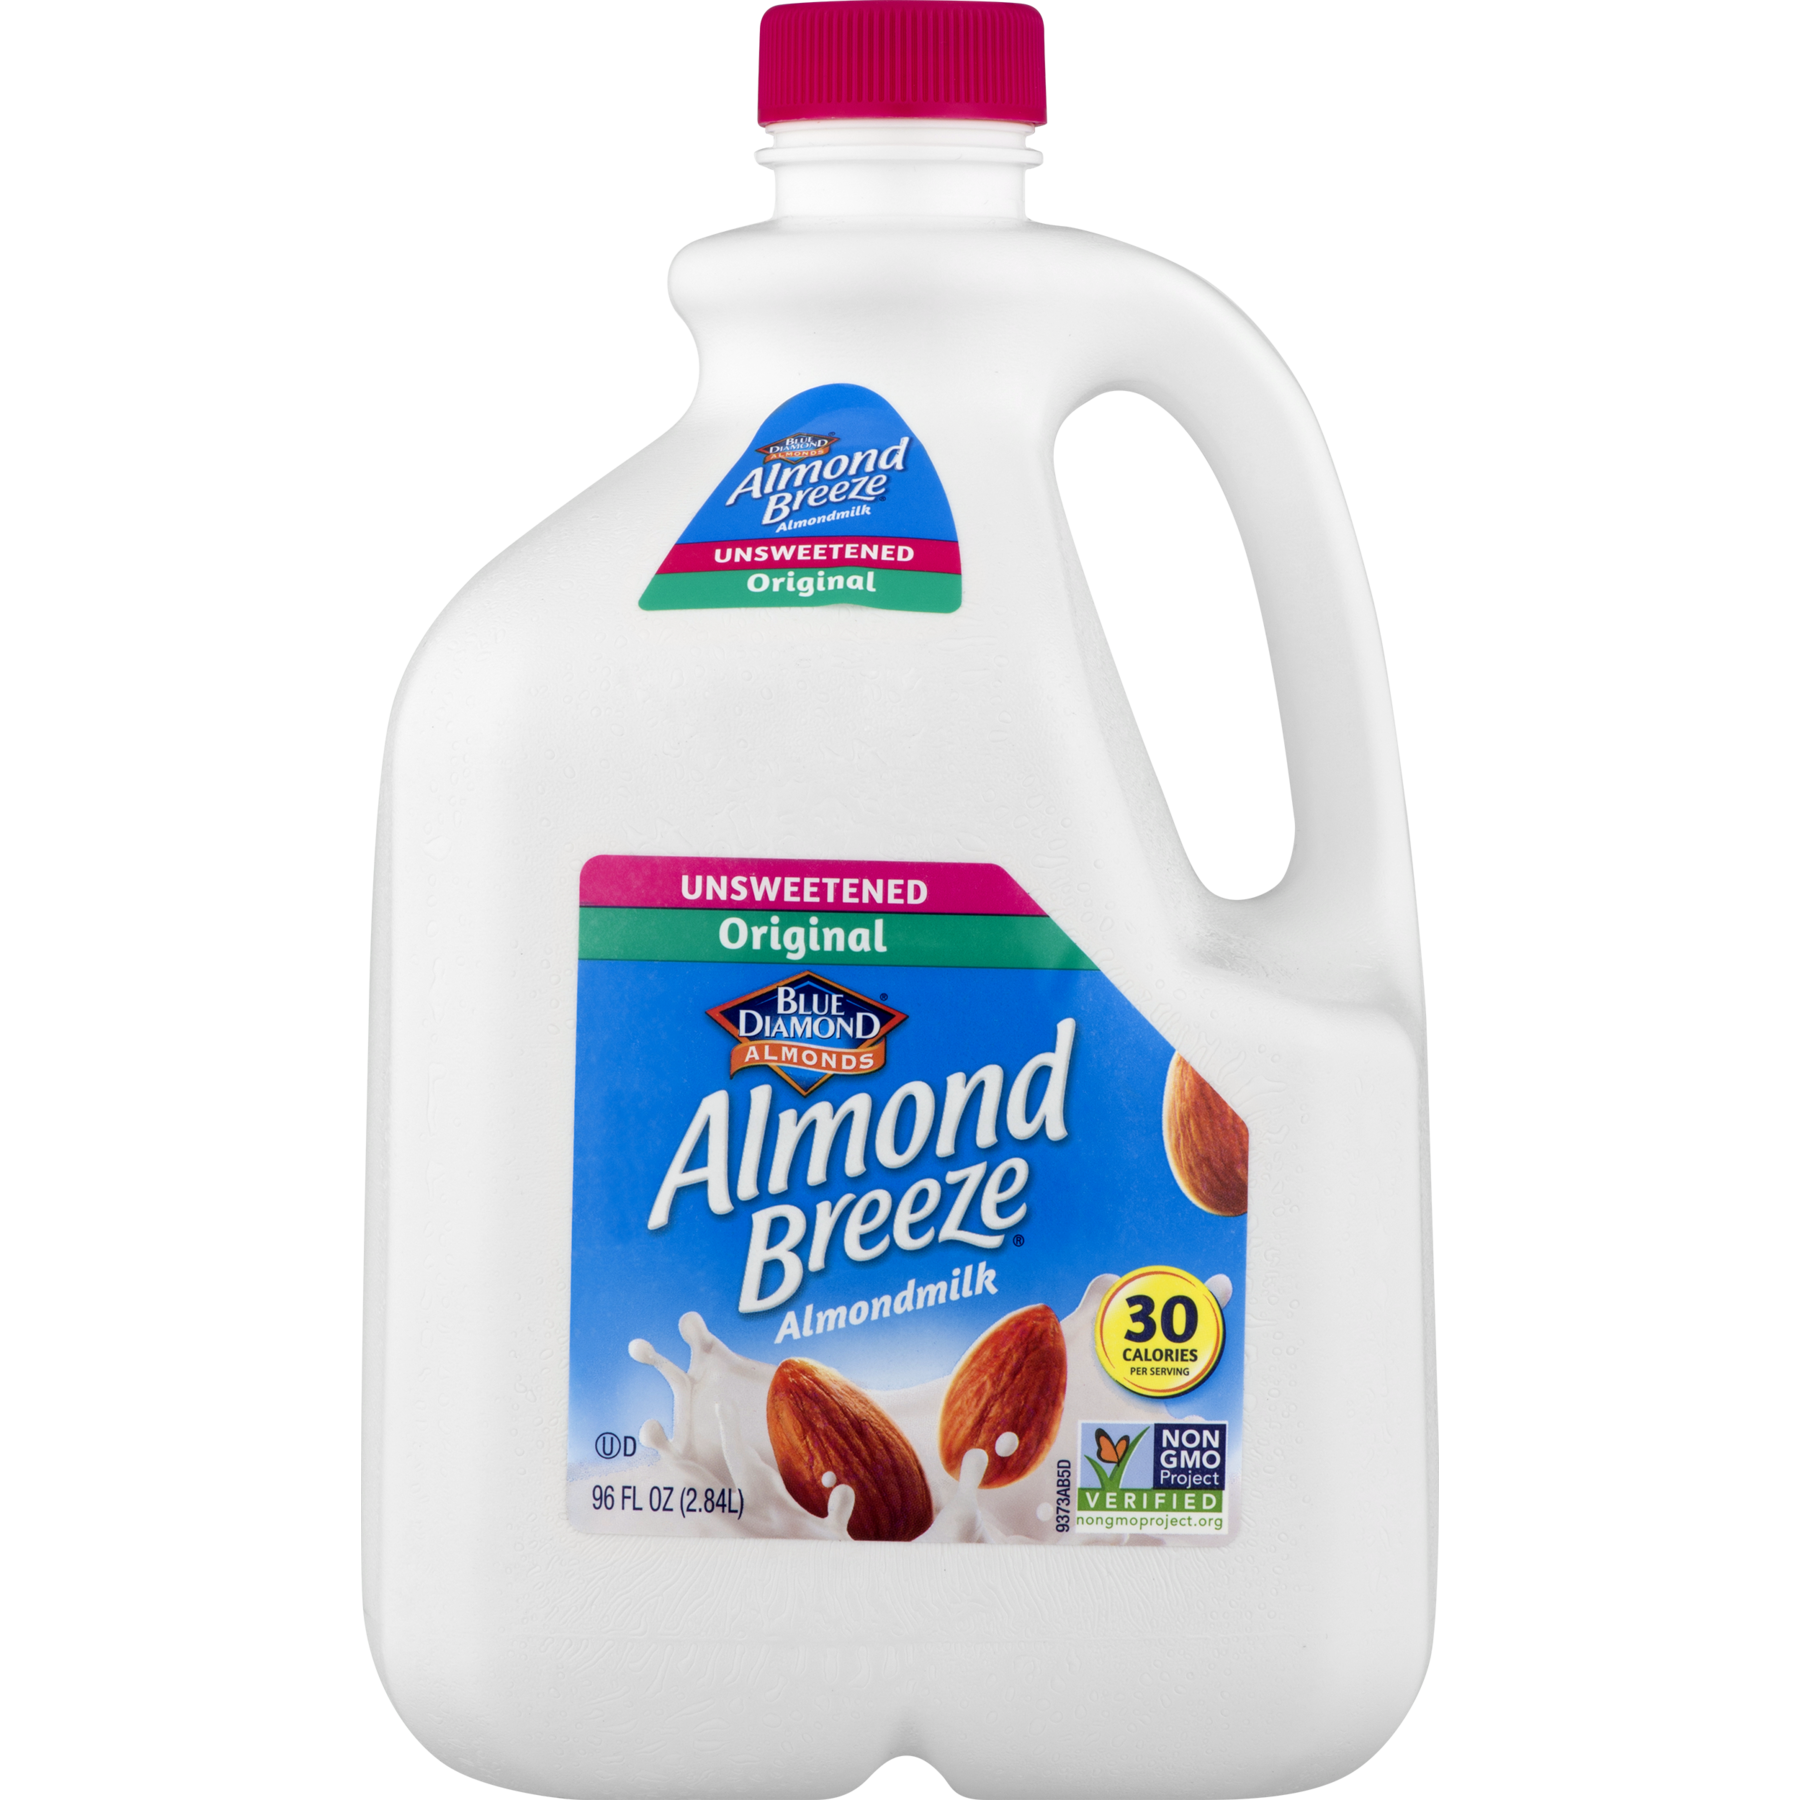 Almond Breeze Unsweetened Original Almondmilk 96oz CTN product image